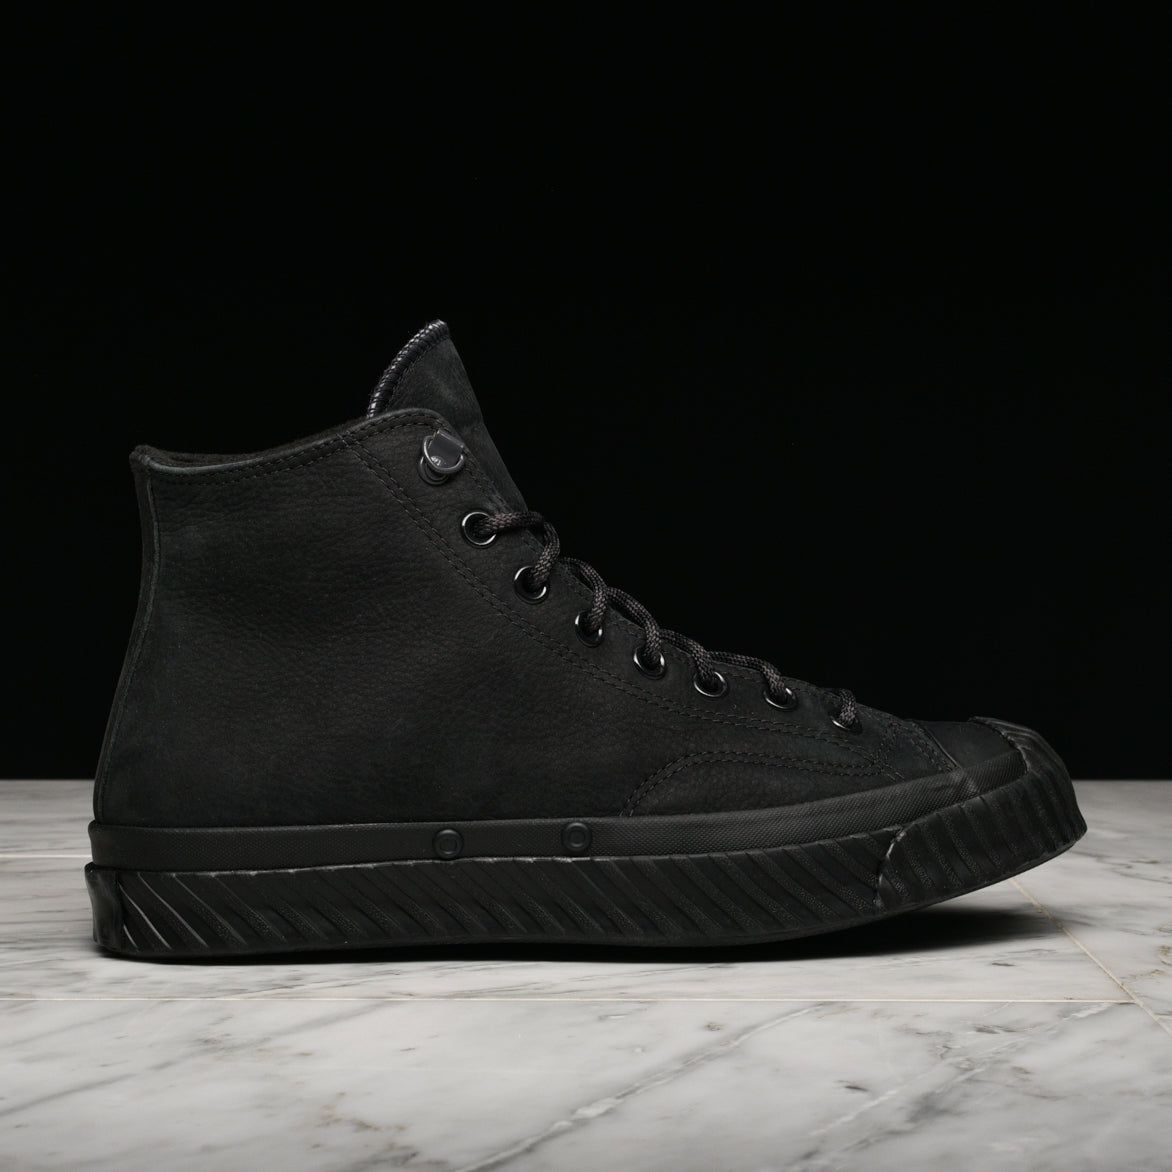 BOSEY WATER-REPELLENT CHUCK 70 - BLACK / ALMOST BLACK